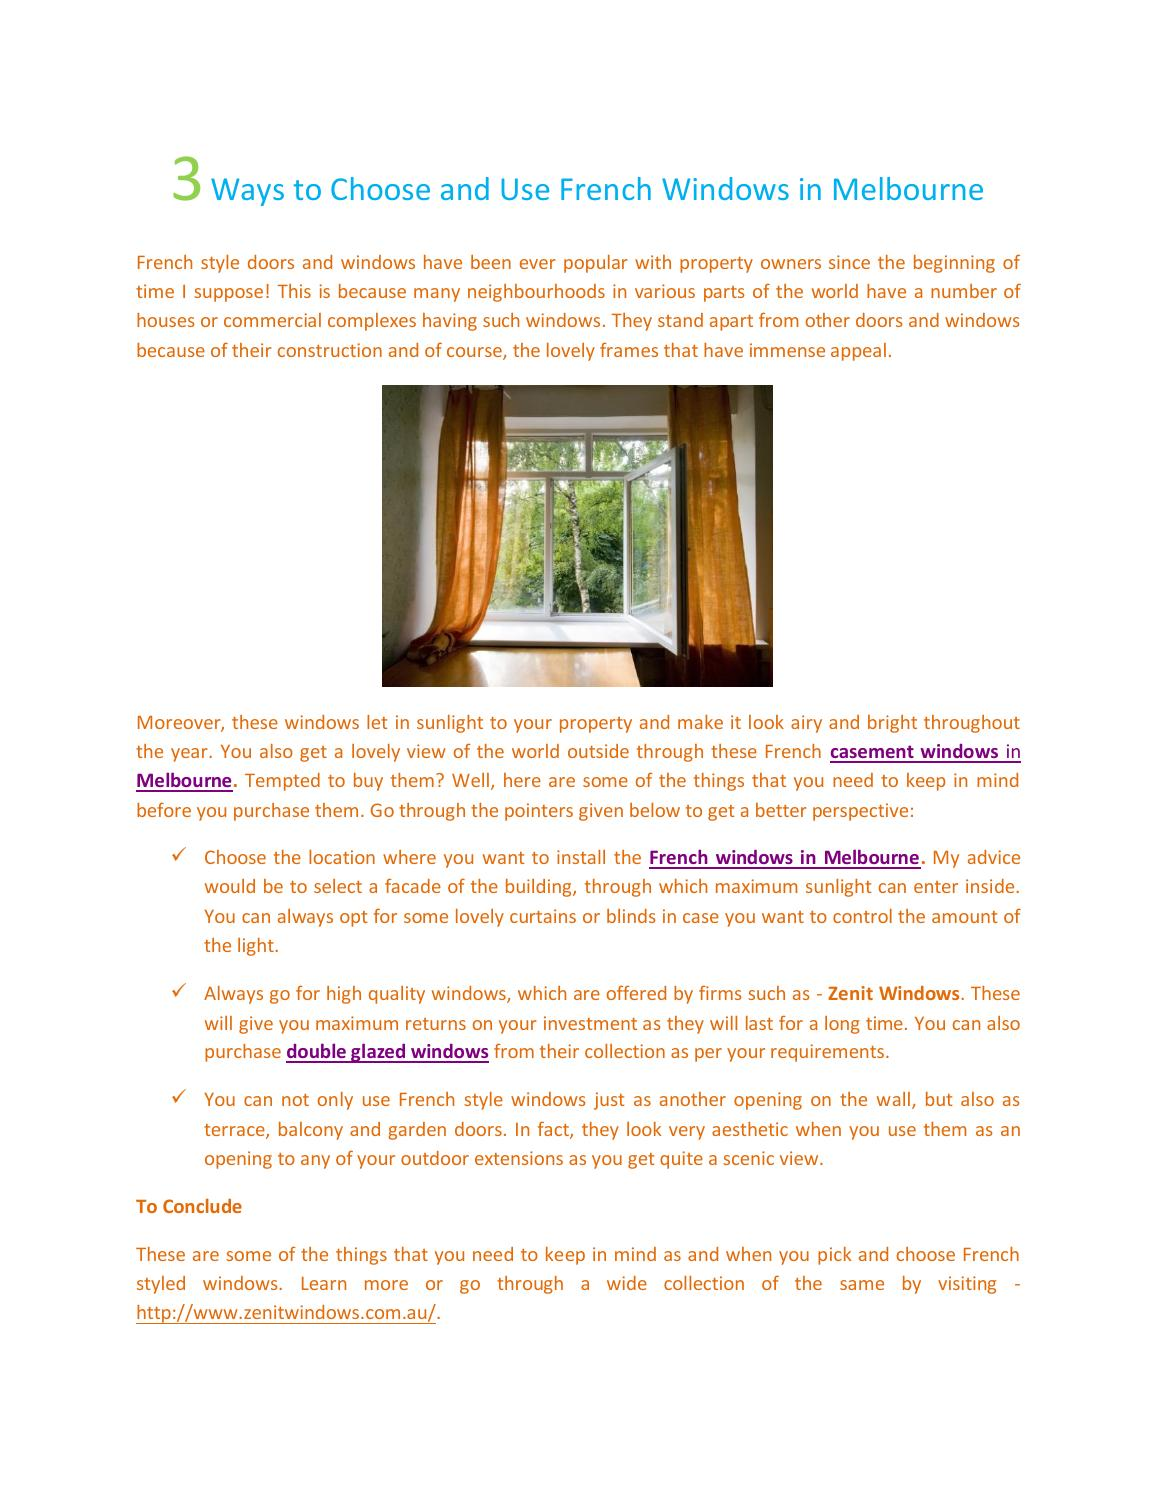 3 ways to choose and use french windows in melbourne by Zenit ...